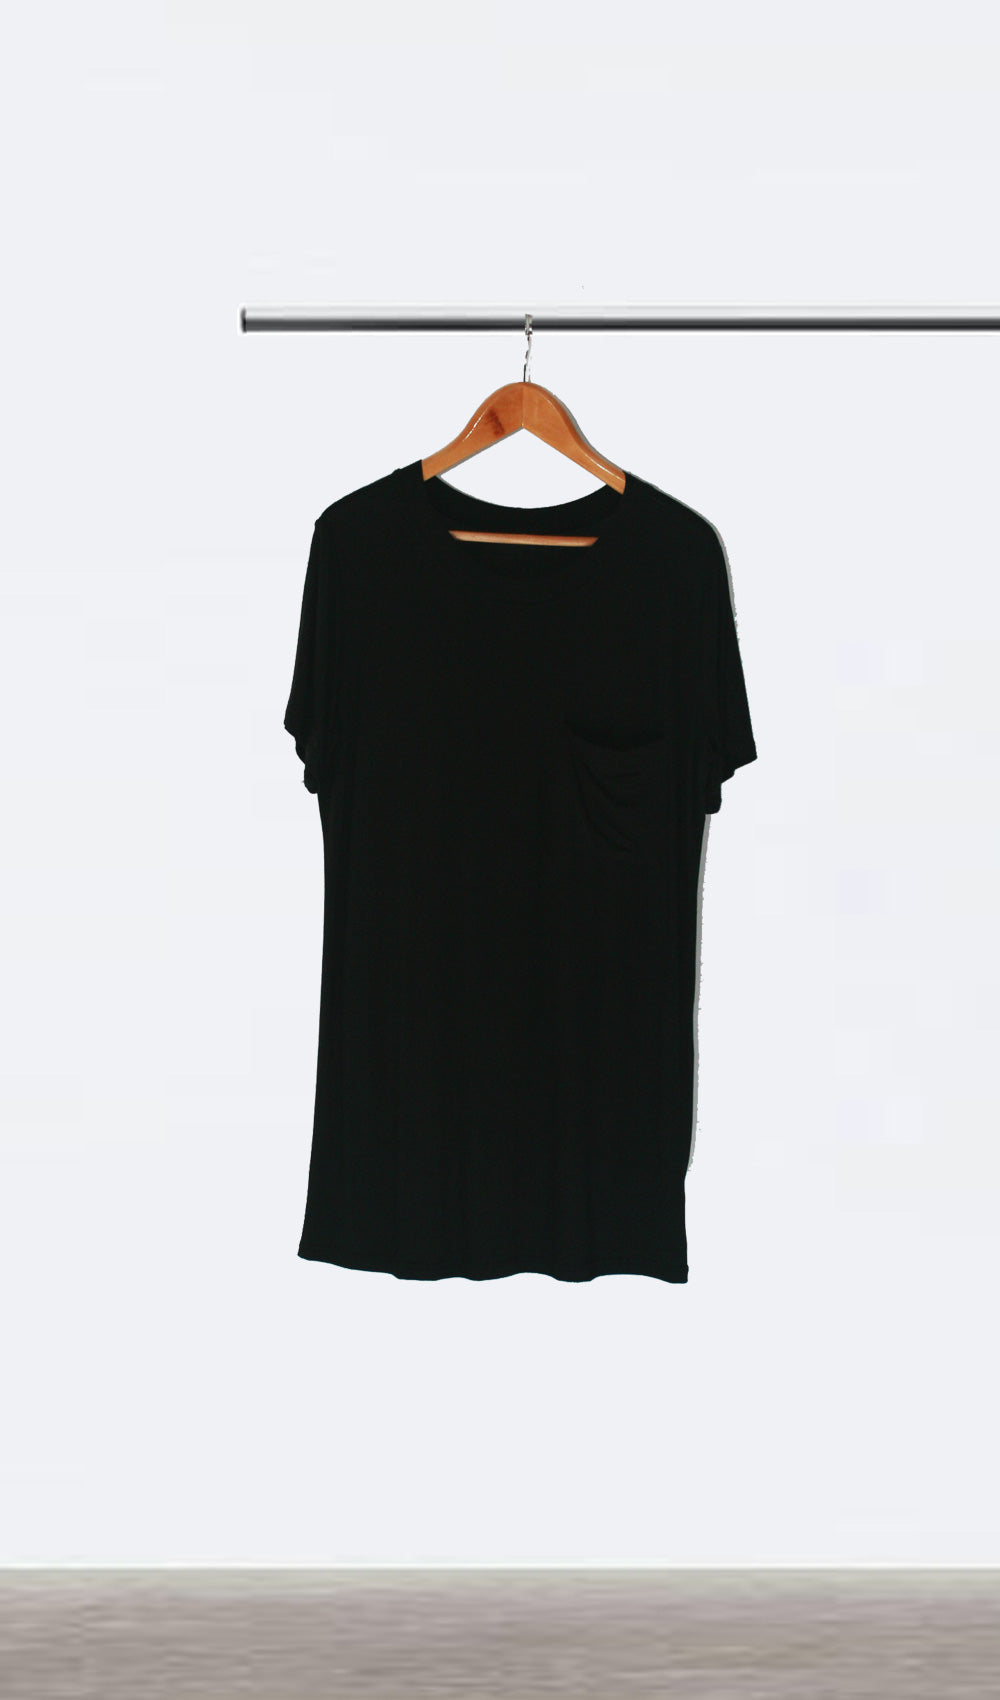 Ellipsis - The Black Tee Dress